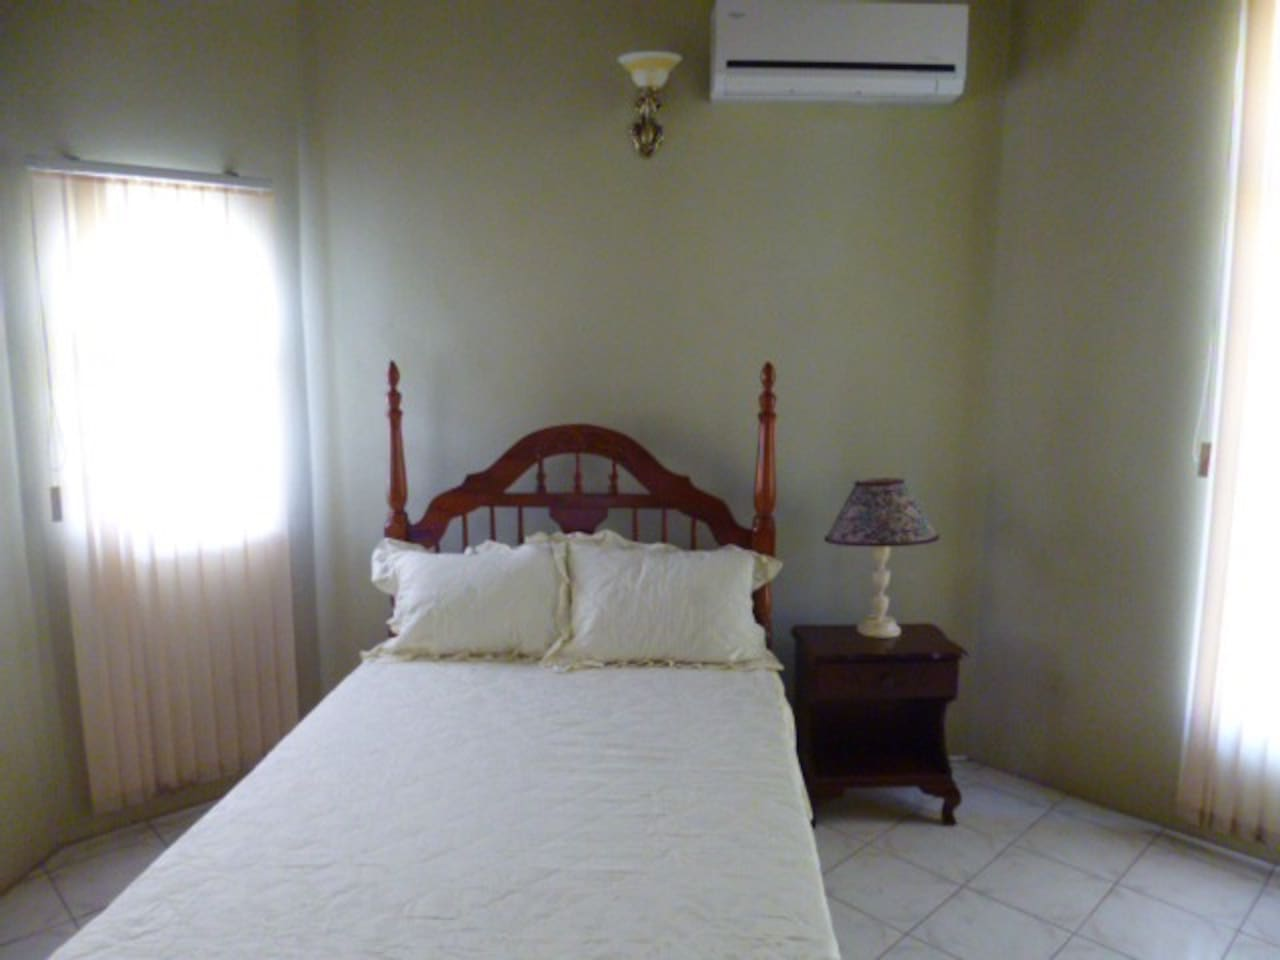 Midsize bedroom. Double bed and Air Conditioning shown